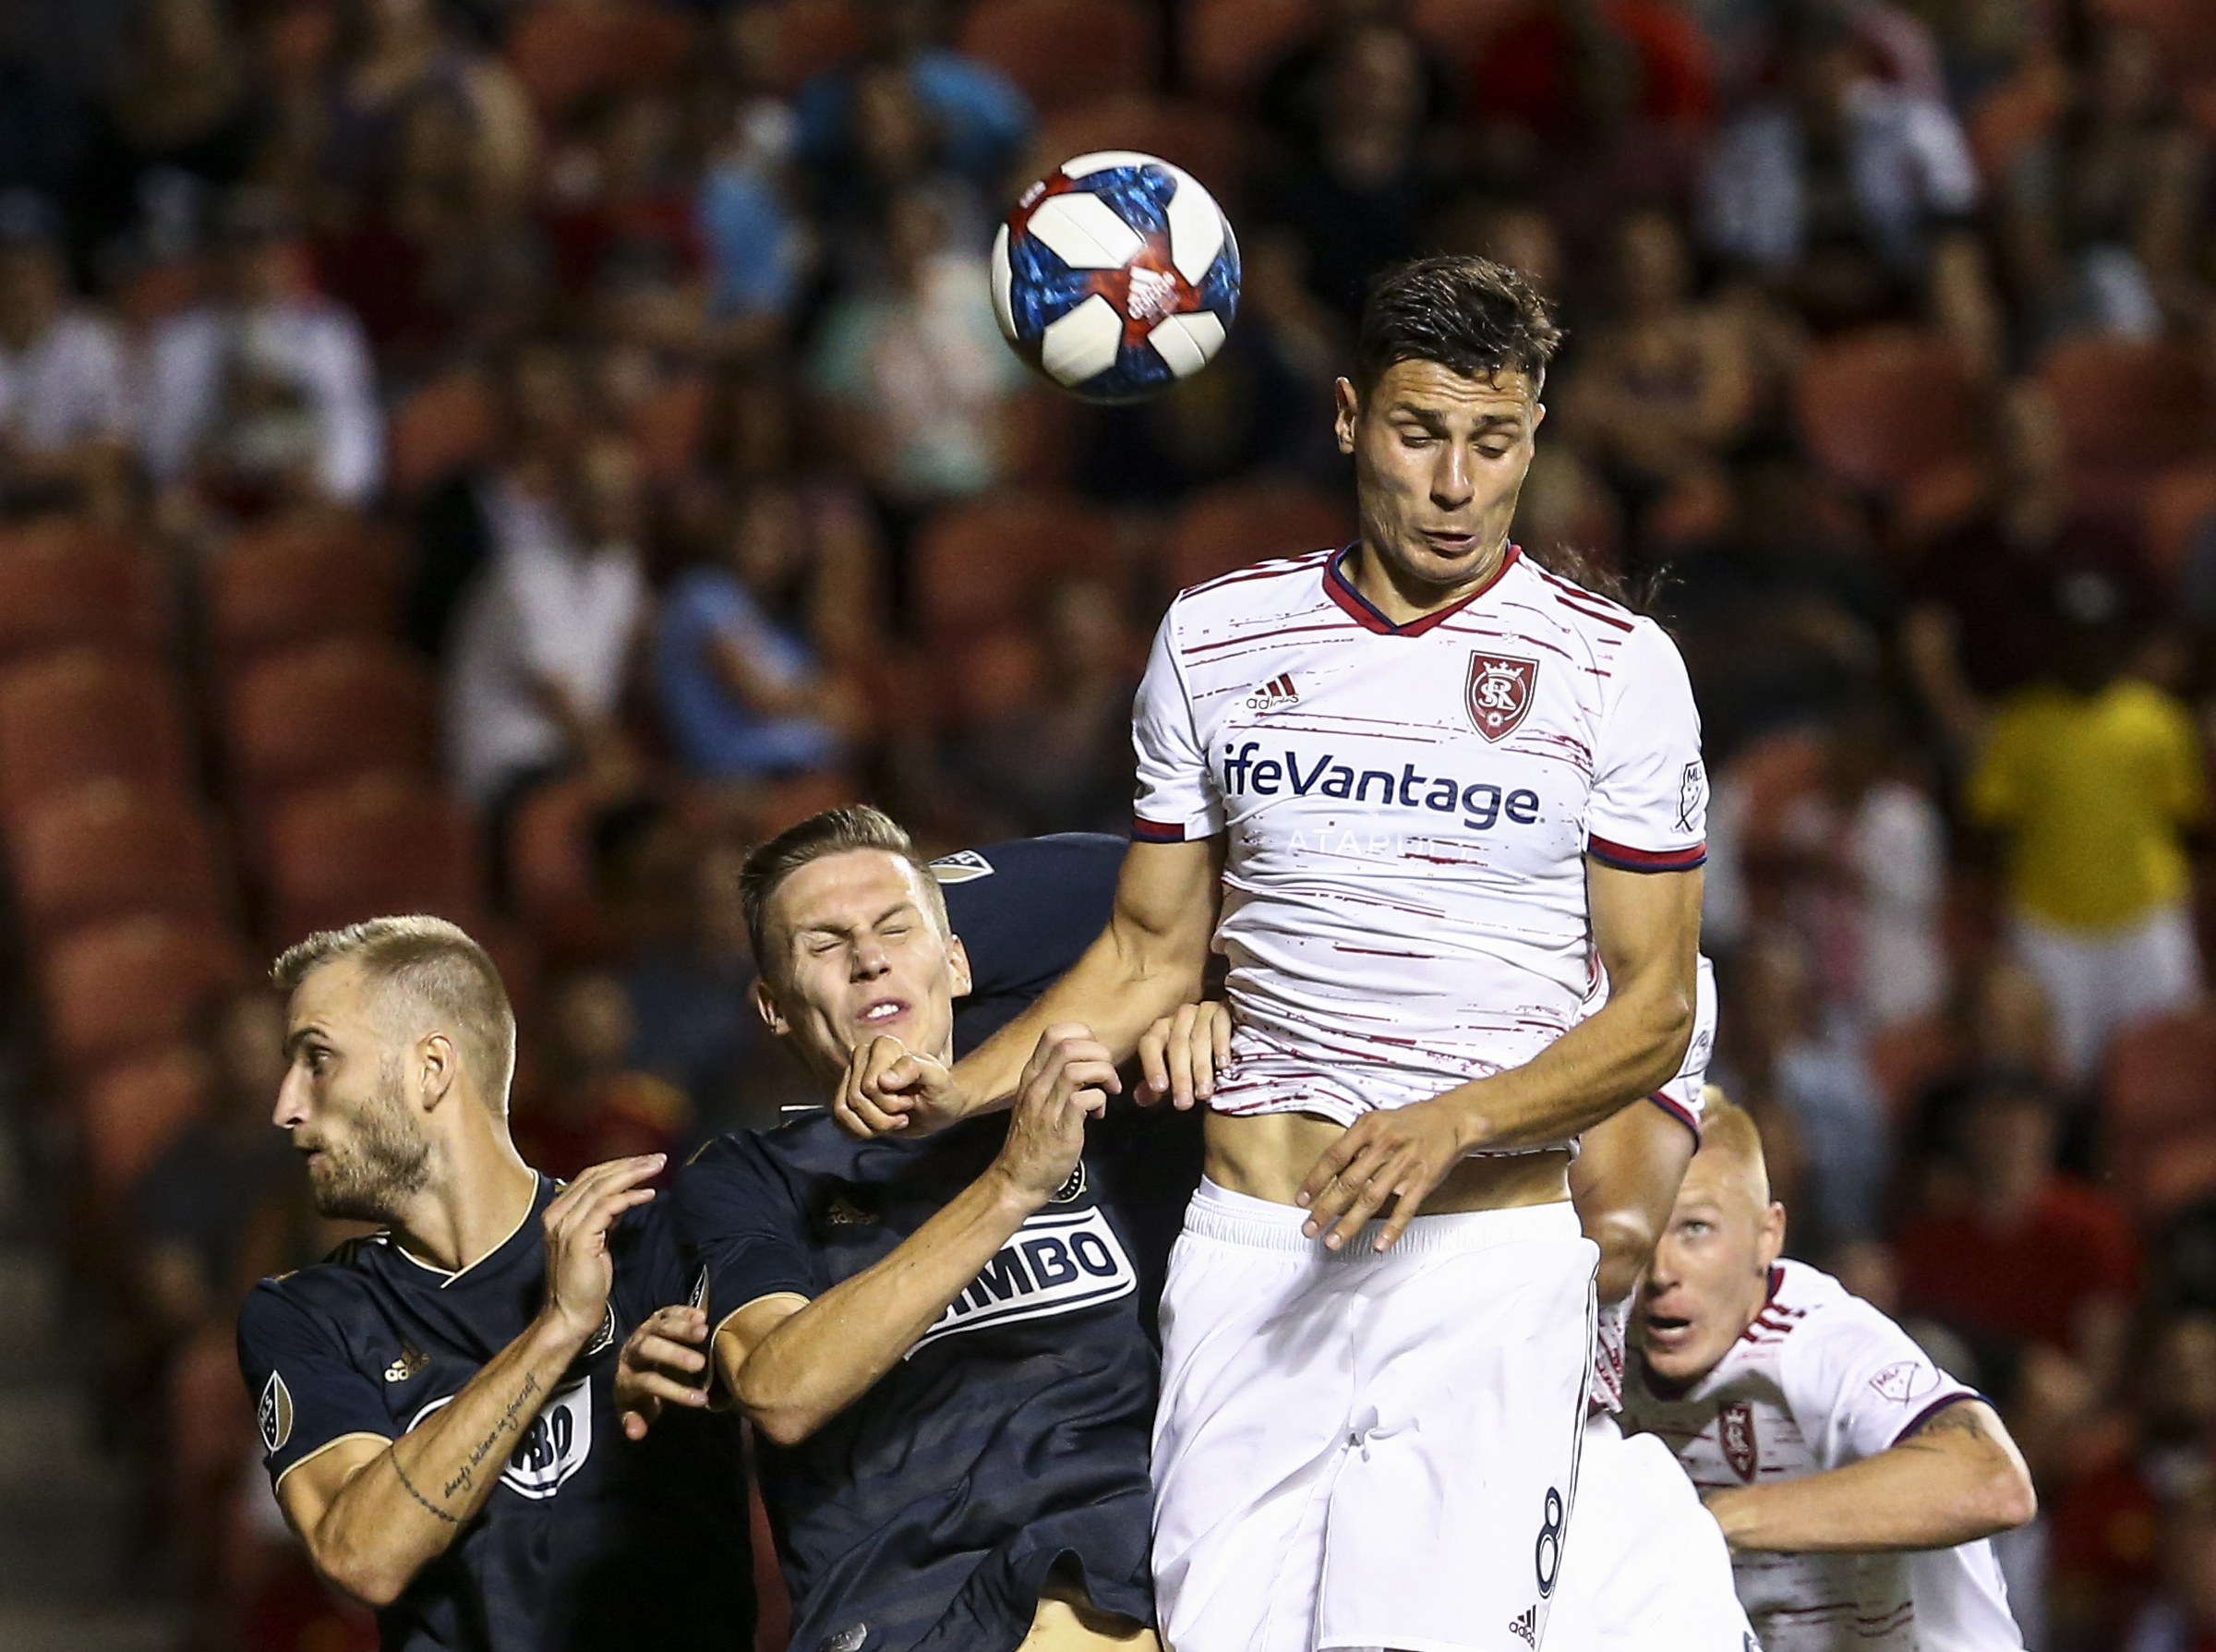 Real Salt Lake midfielder Damir Kreilach (8) takes the header on a corner kick during the second half of a game at Rio Tinto Stadium in Sandy on Saturday, July 13, 2019.